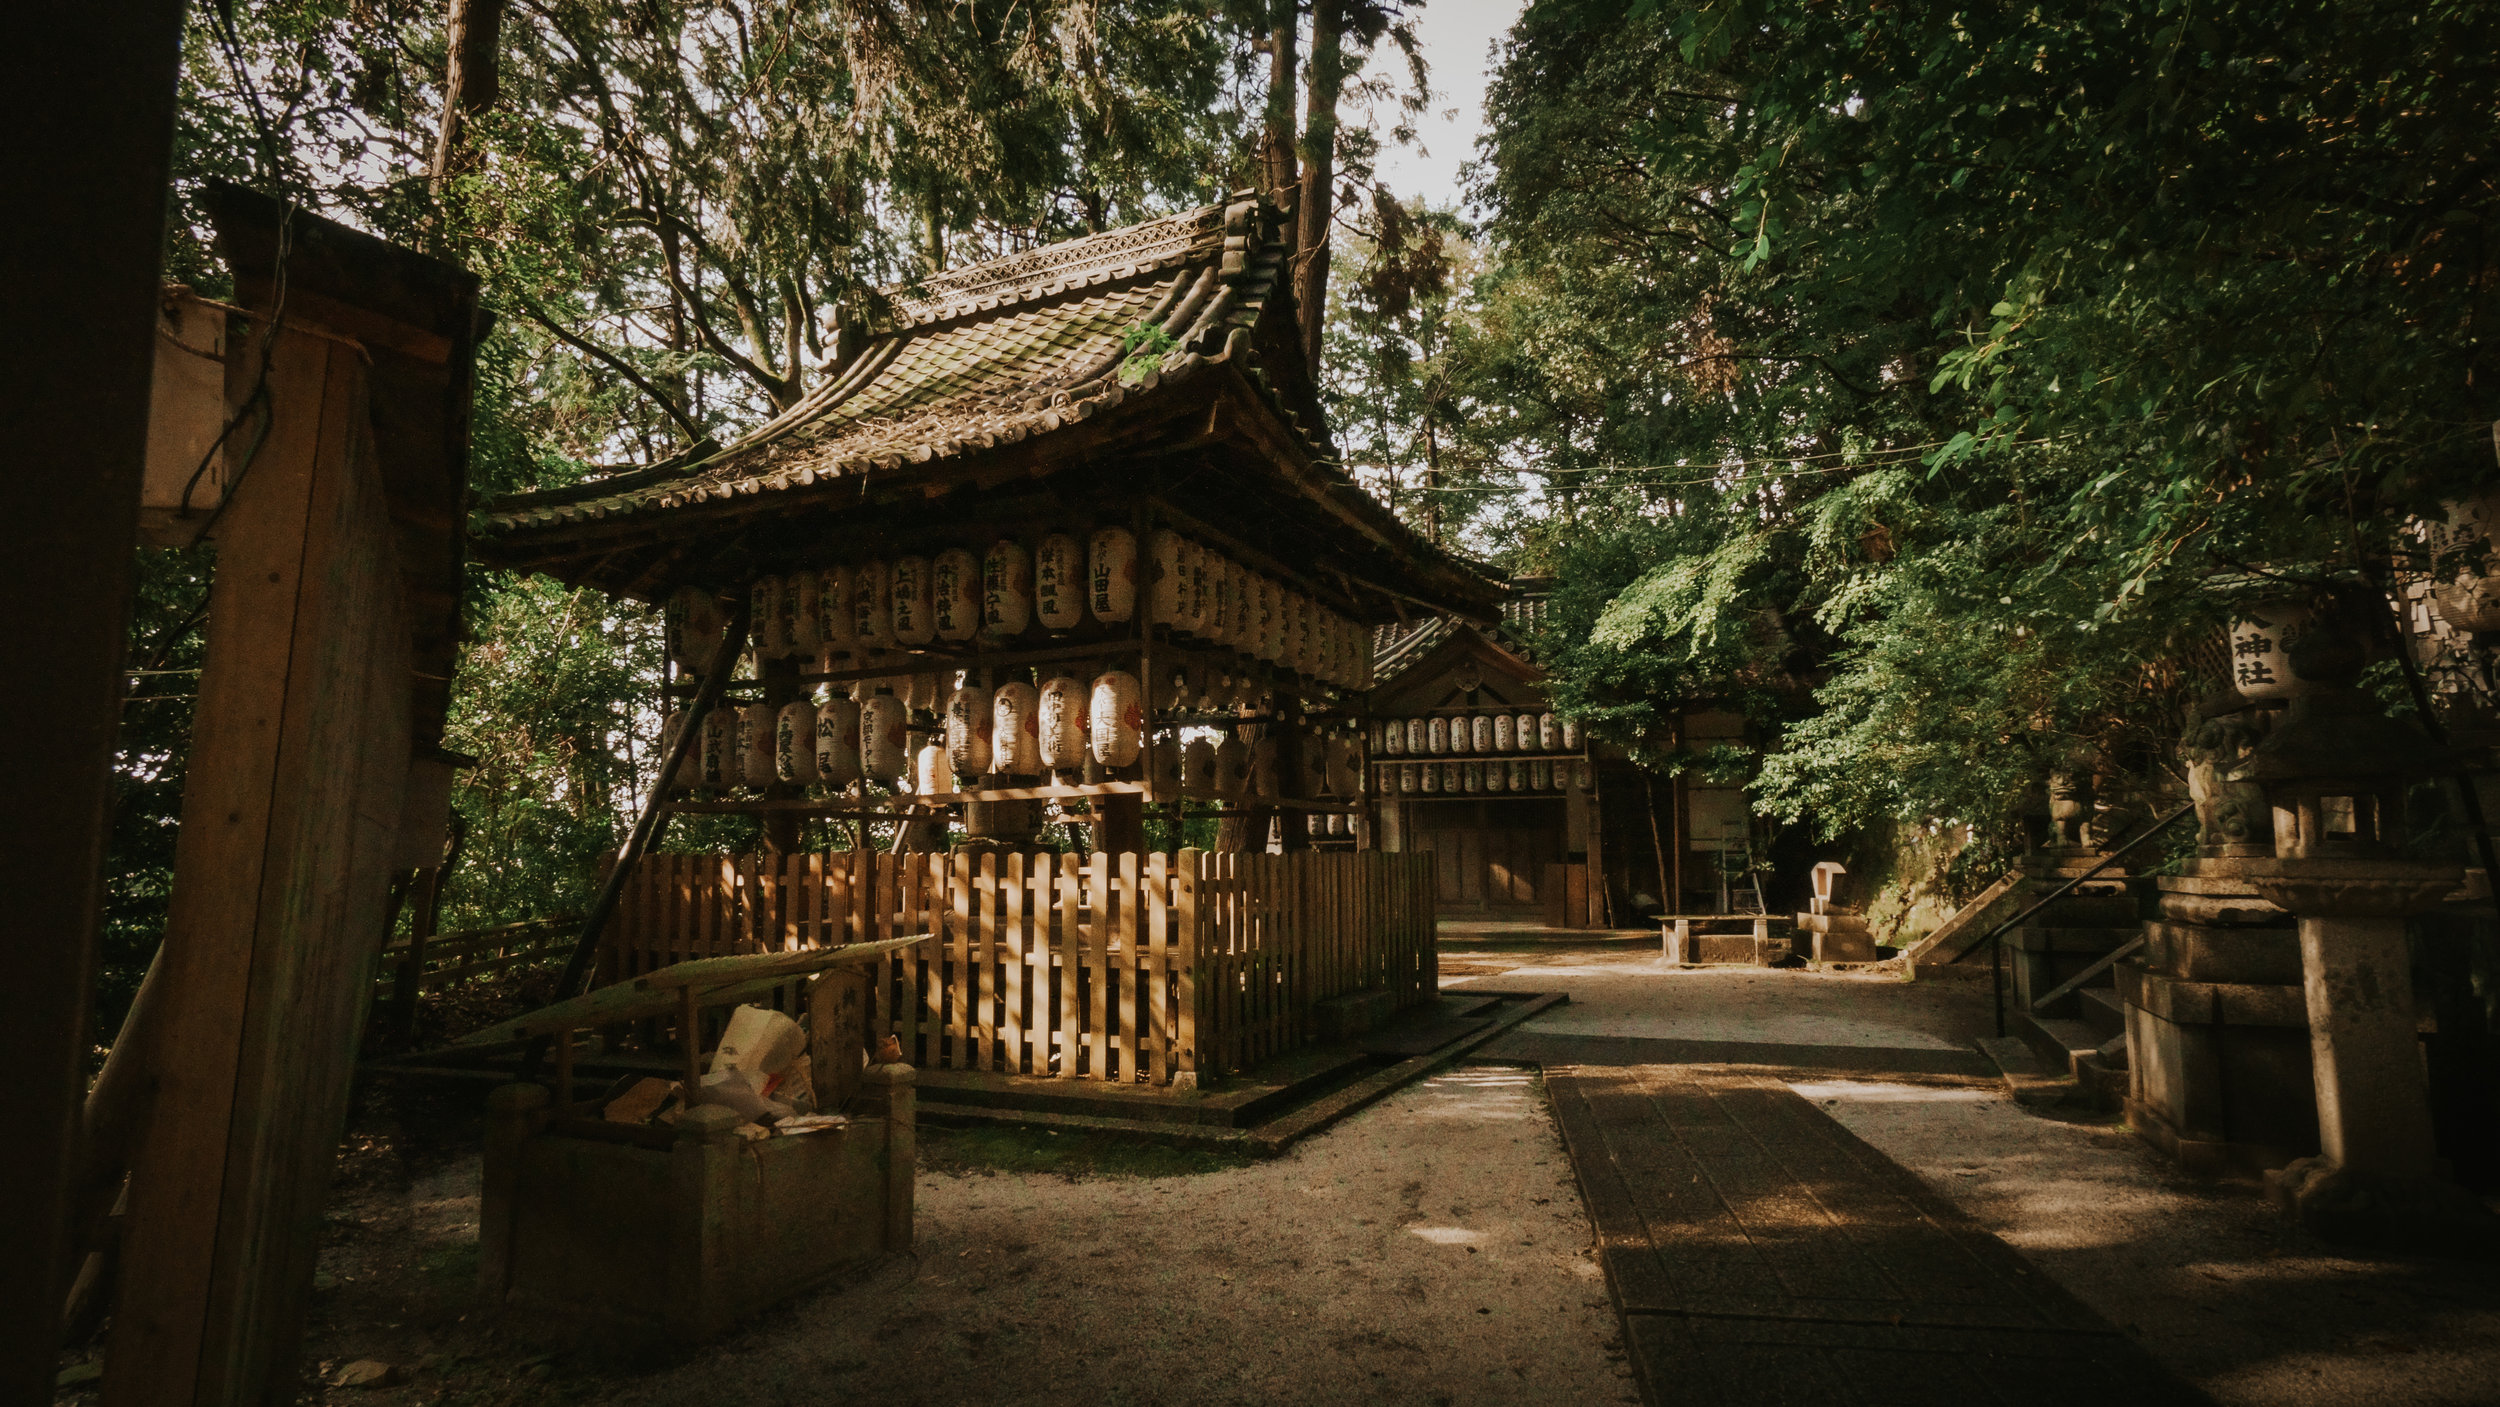 Hachi Shrine up the hill